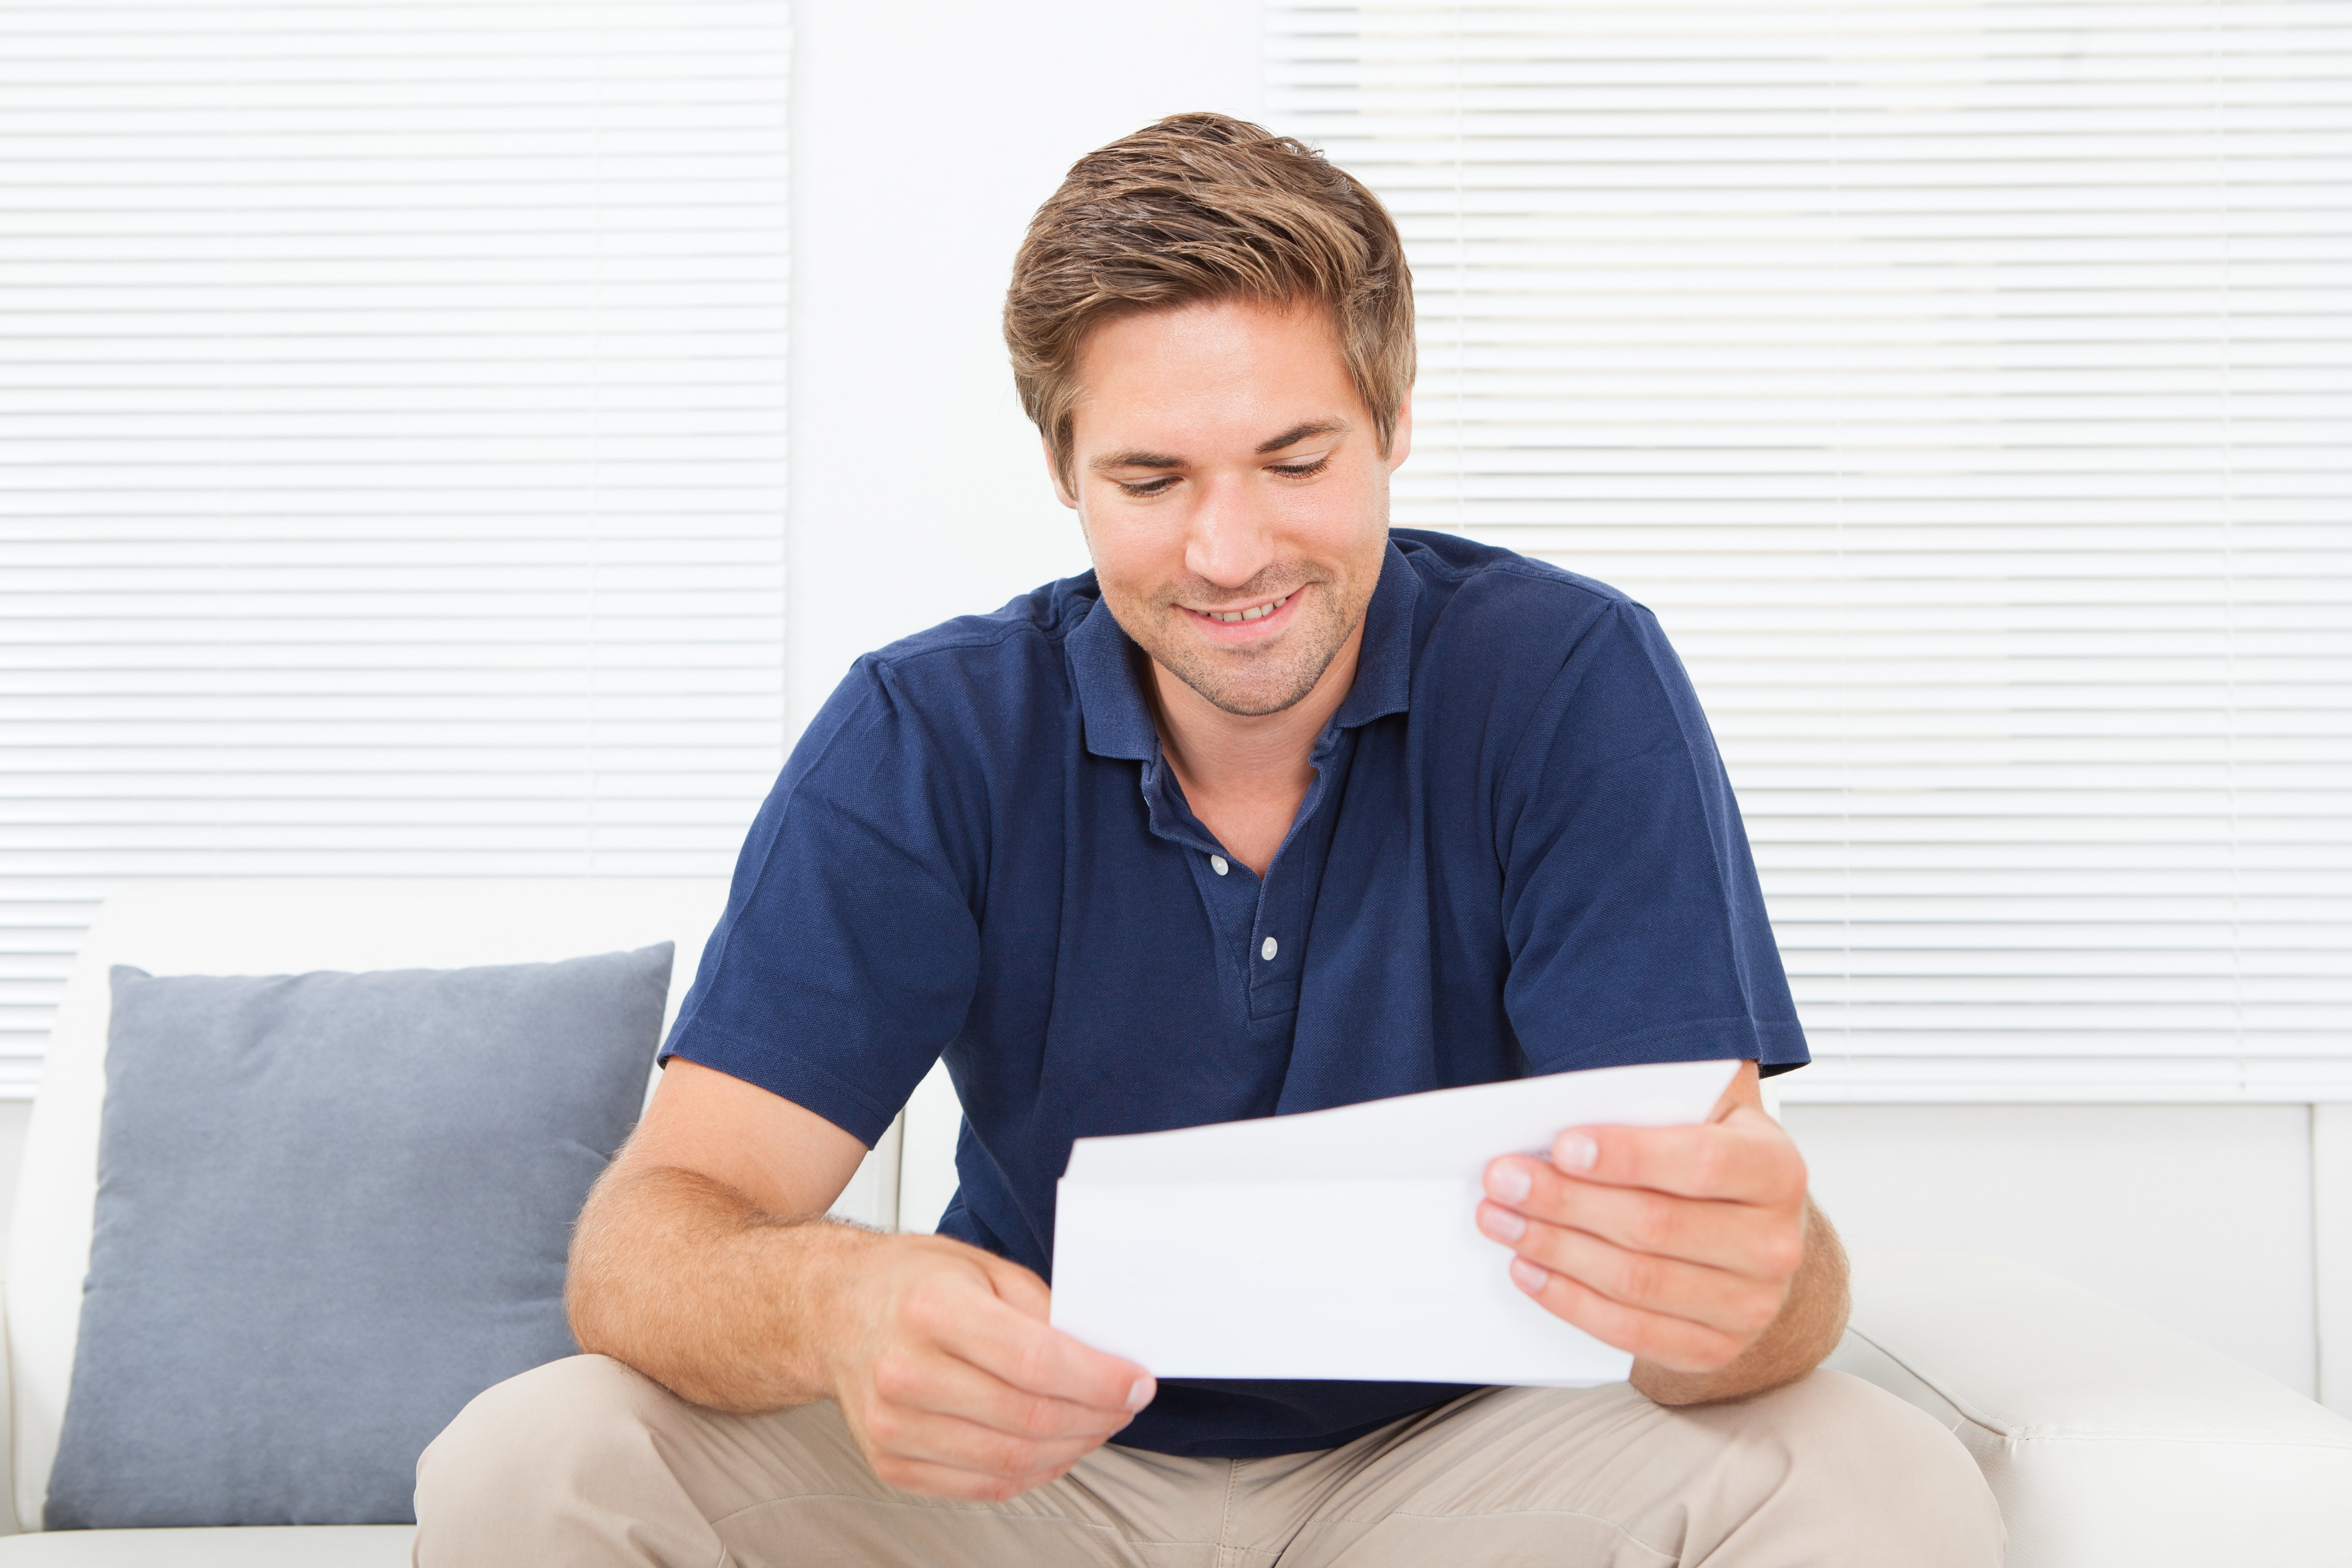 Smiling mid adult man reading letter while sitting on a sofa | Photo: Shutterstock.com